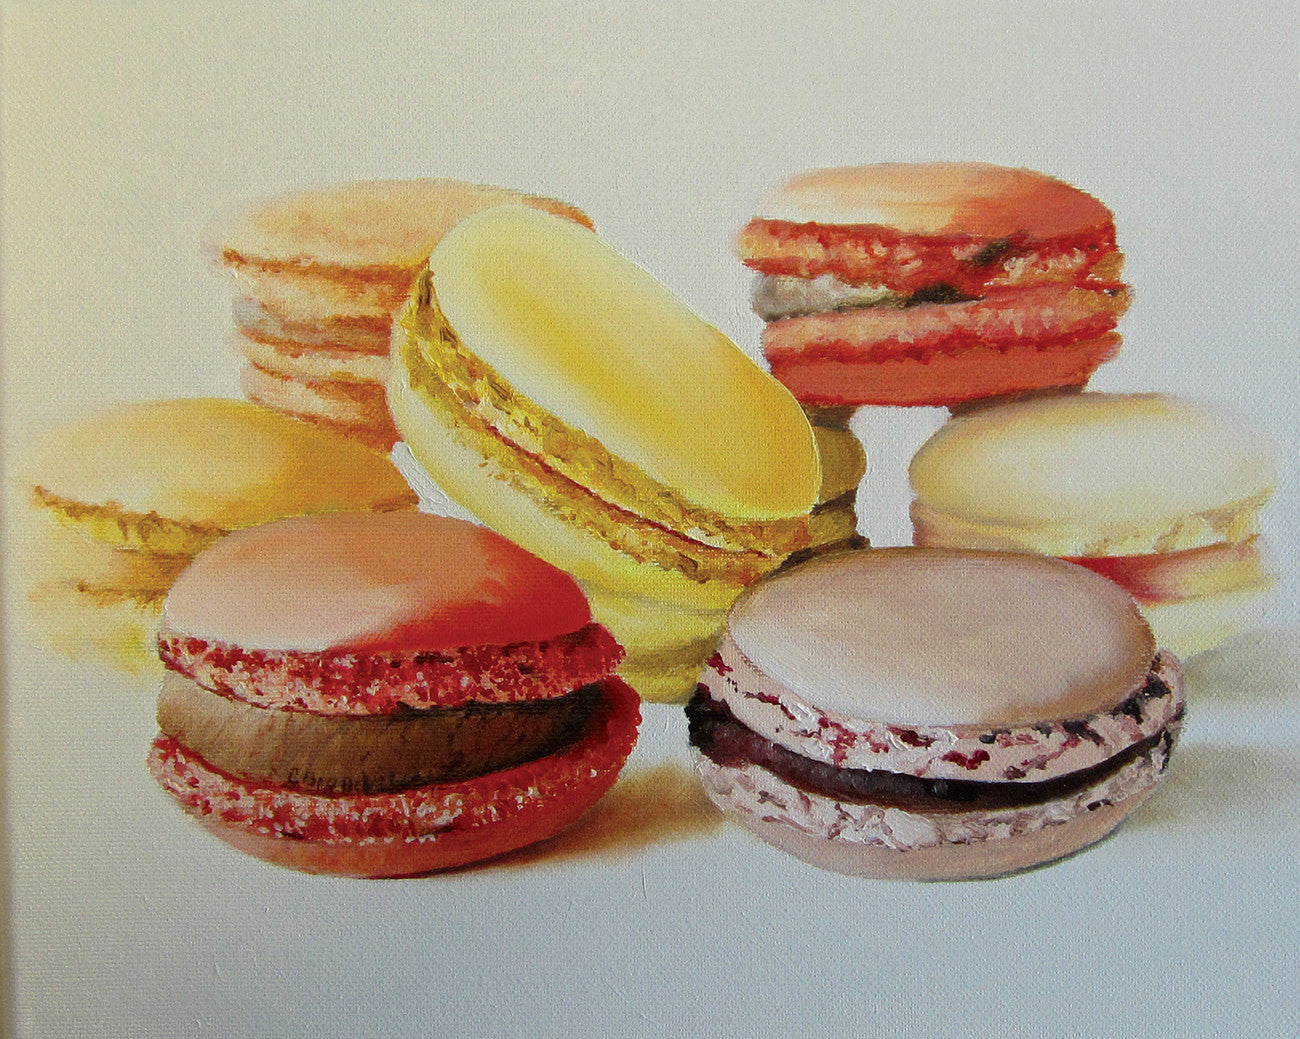 Macaroons / 12 x 9 / oil on canvas